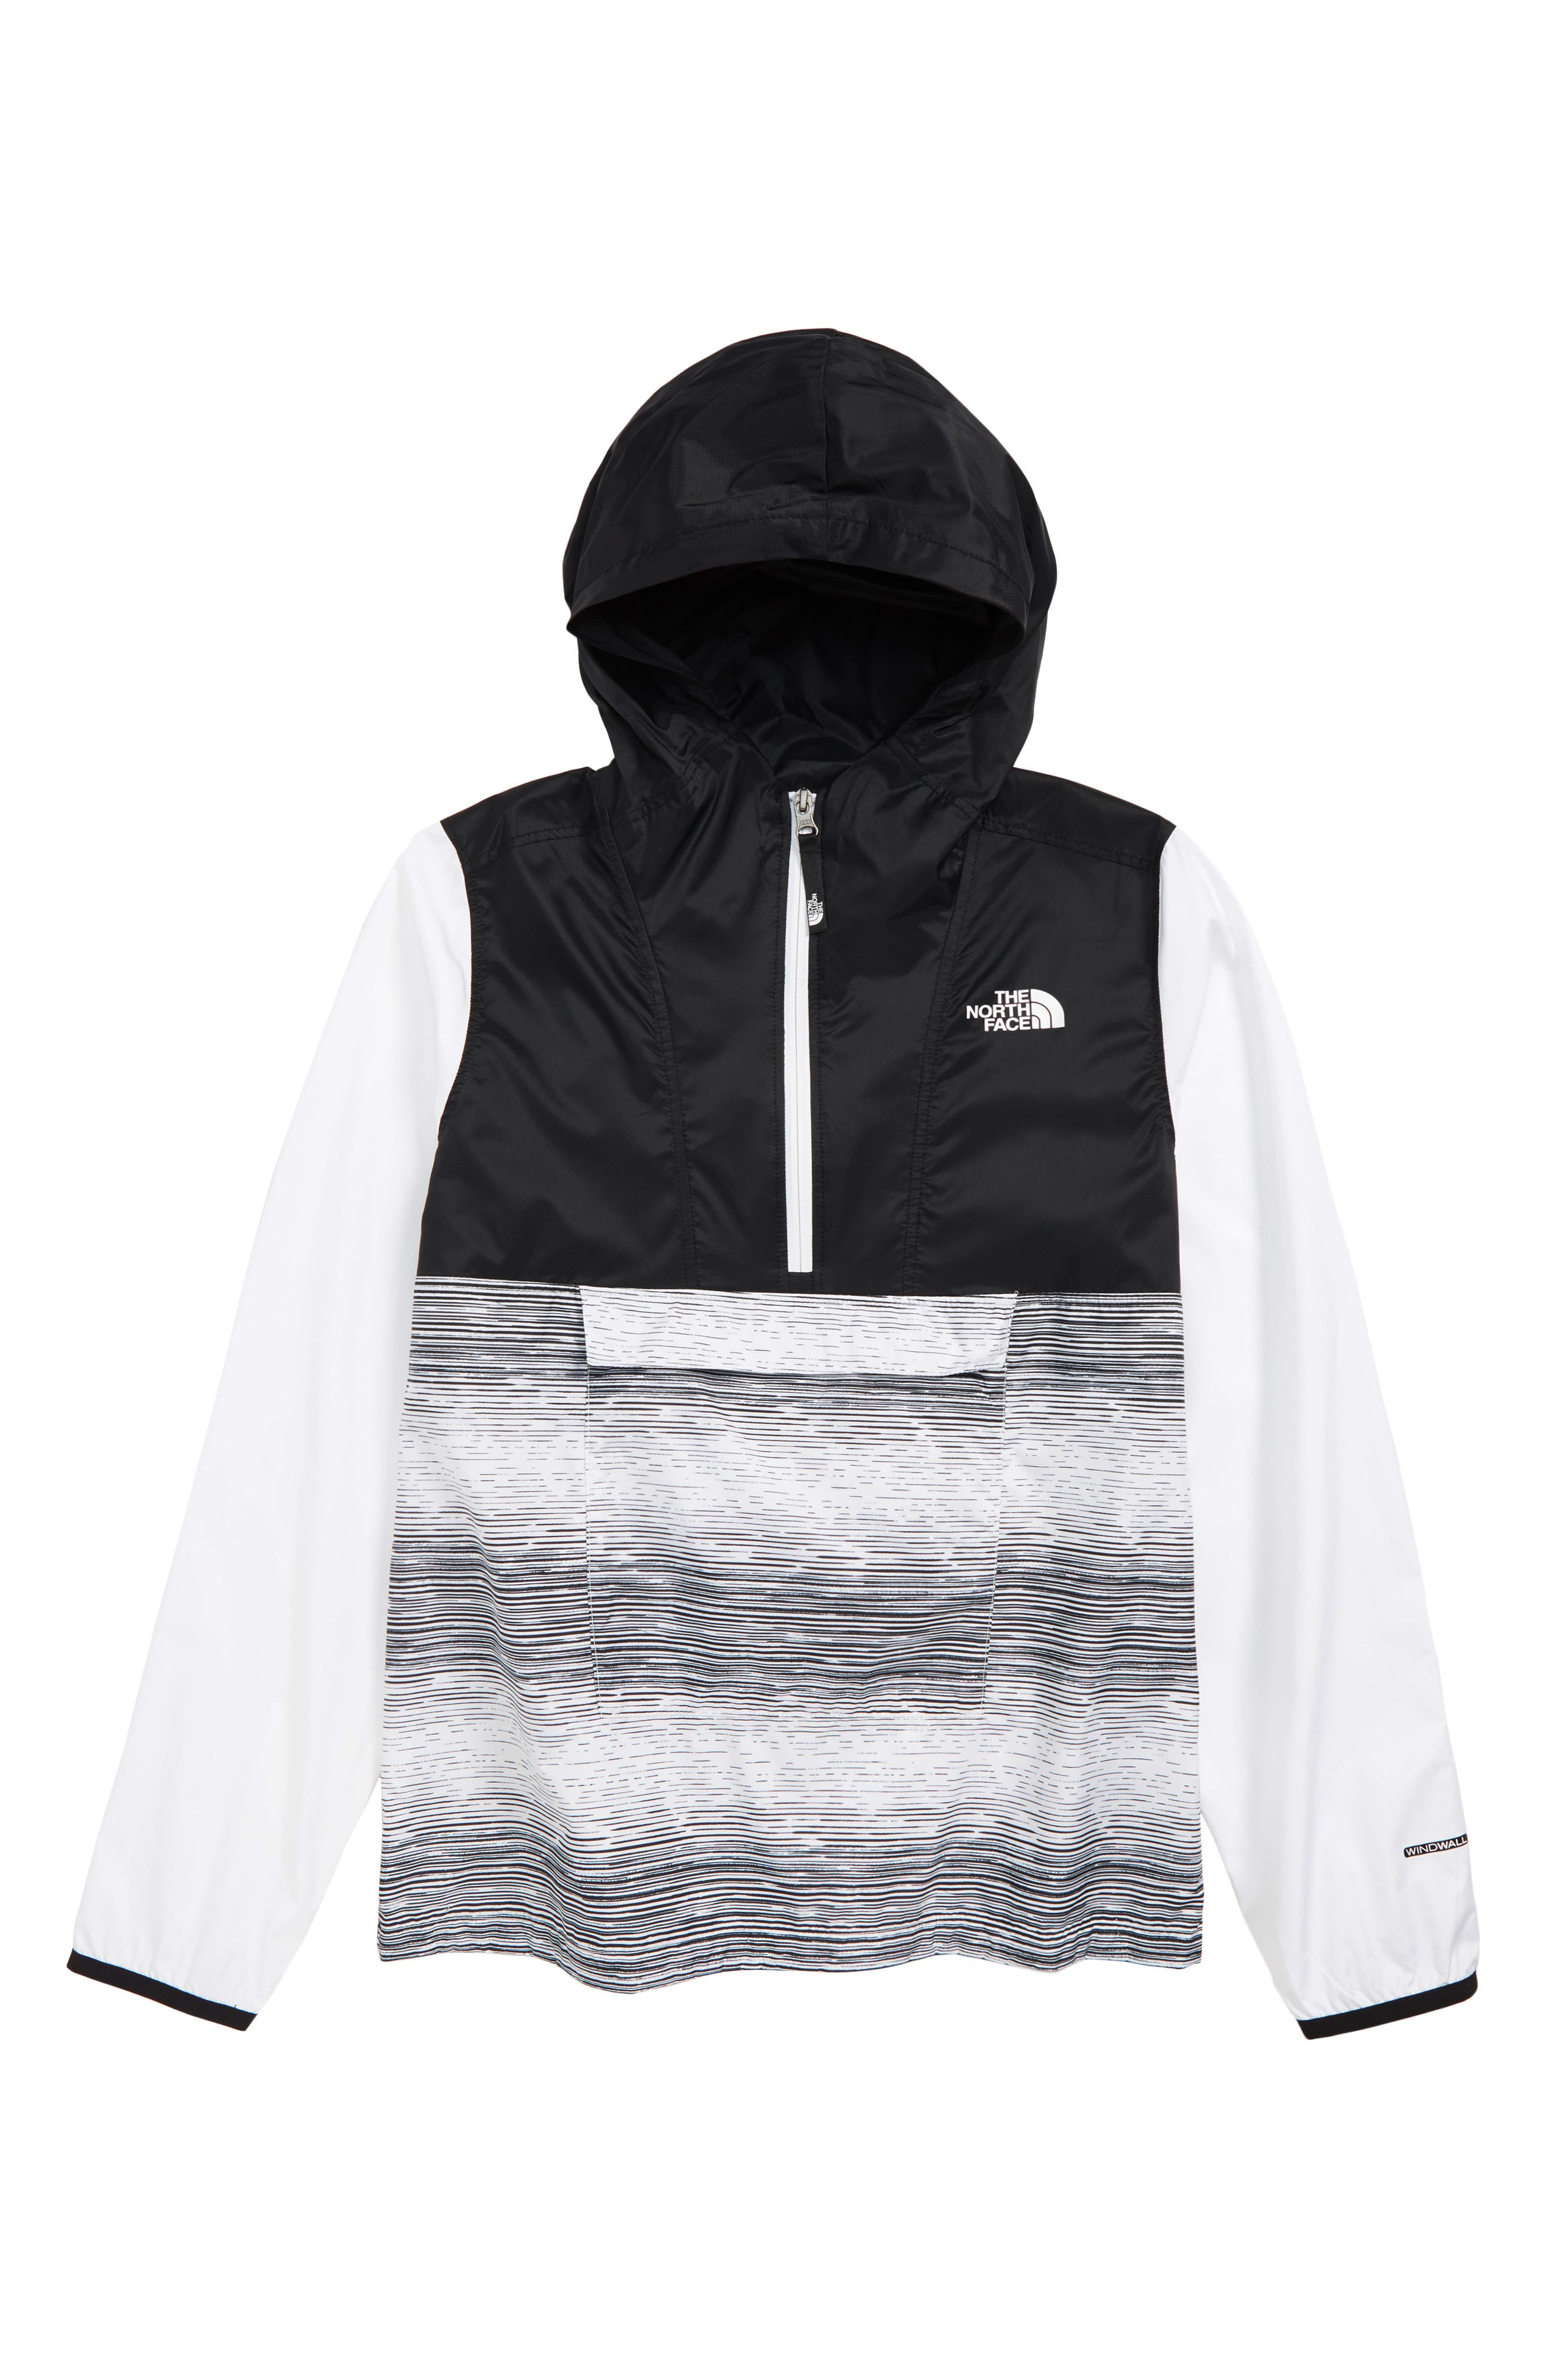 THE NORTH FACE,                             Wind & Water Resistant Fanorak,                             Main thumbnail 1, color,                             TNF WHITE DISTRESSED PRINT